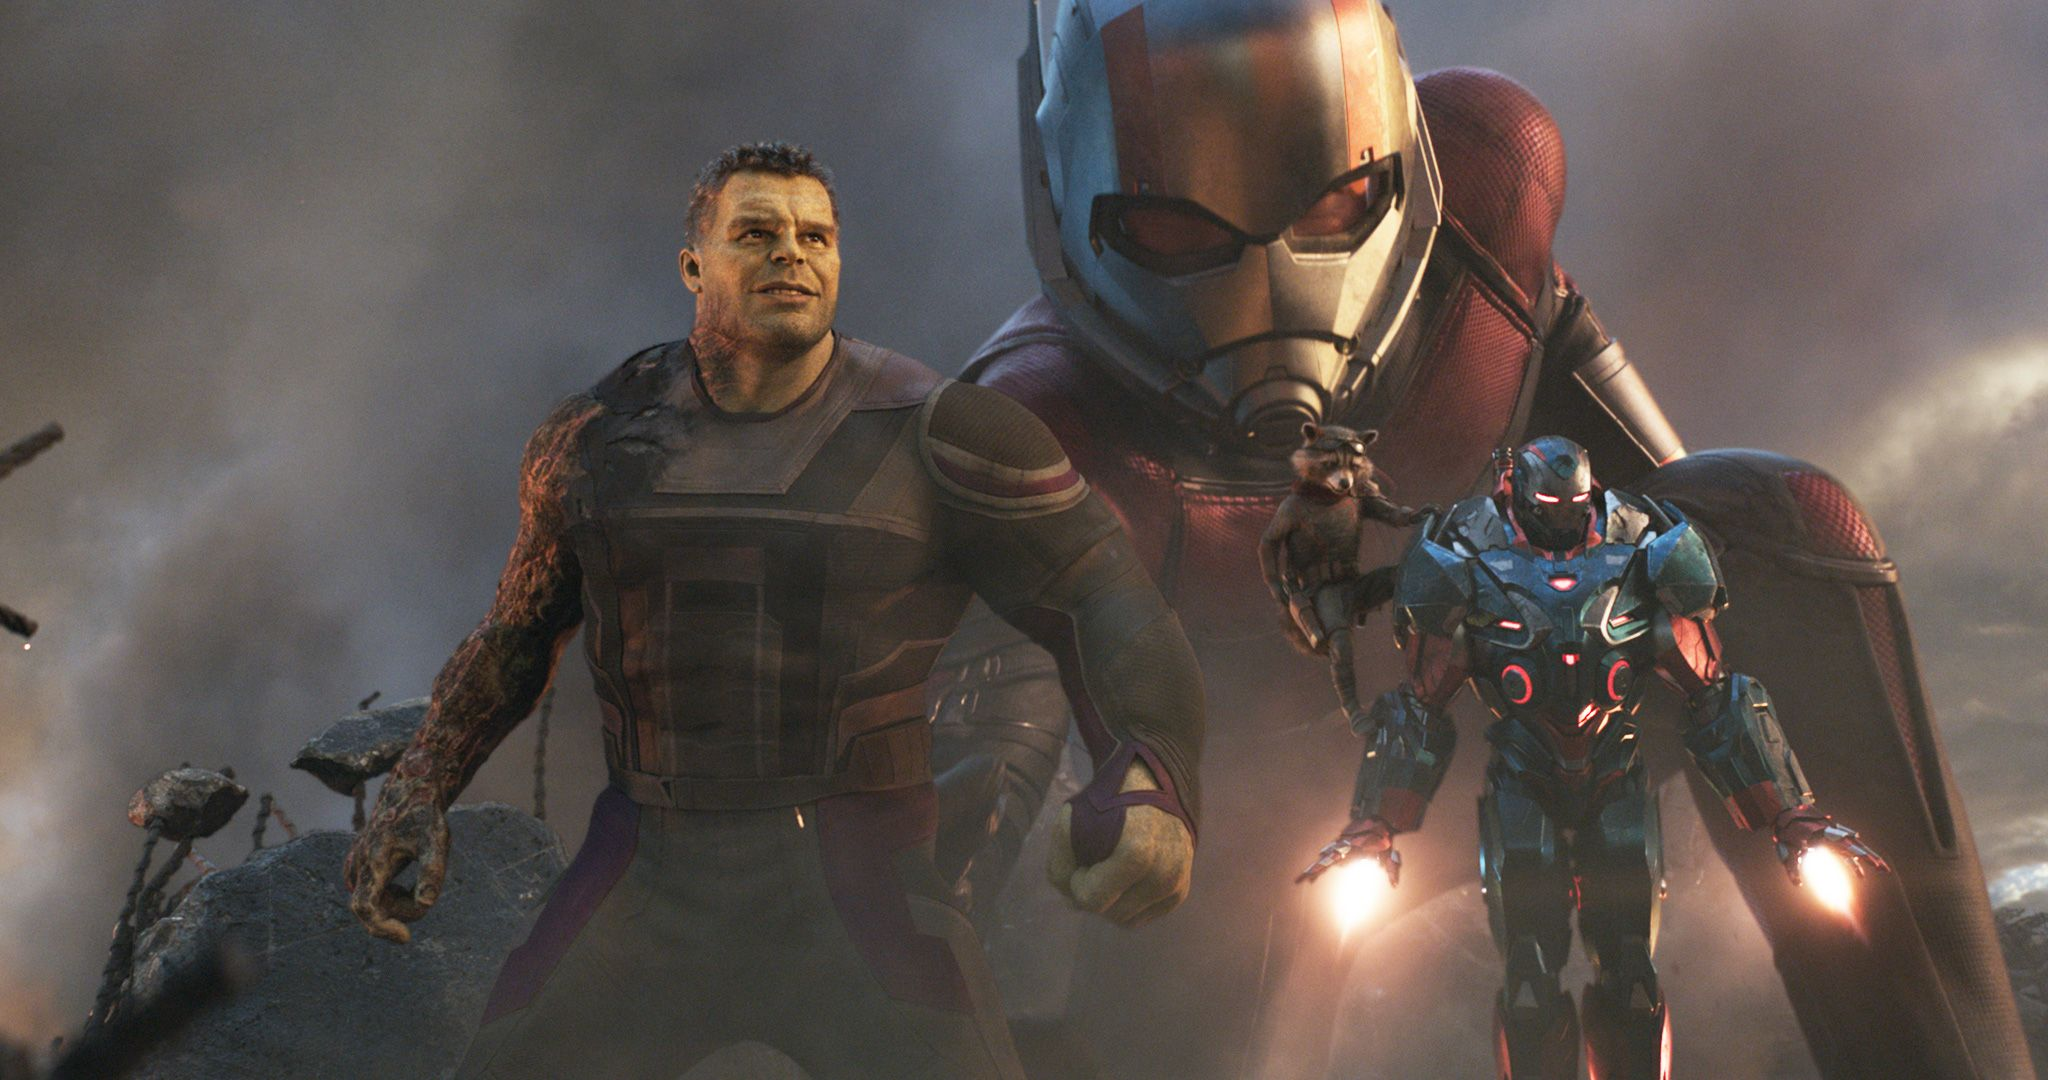 Marvel has just announced even more new movies